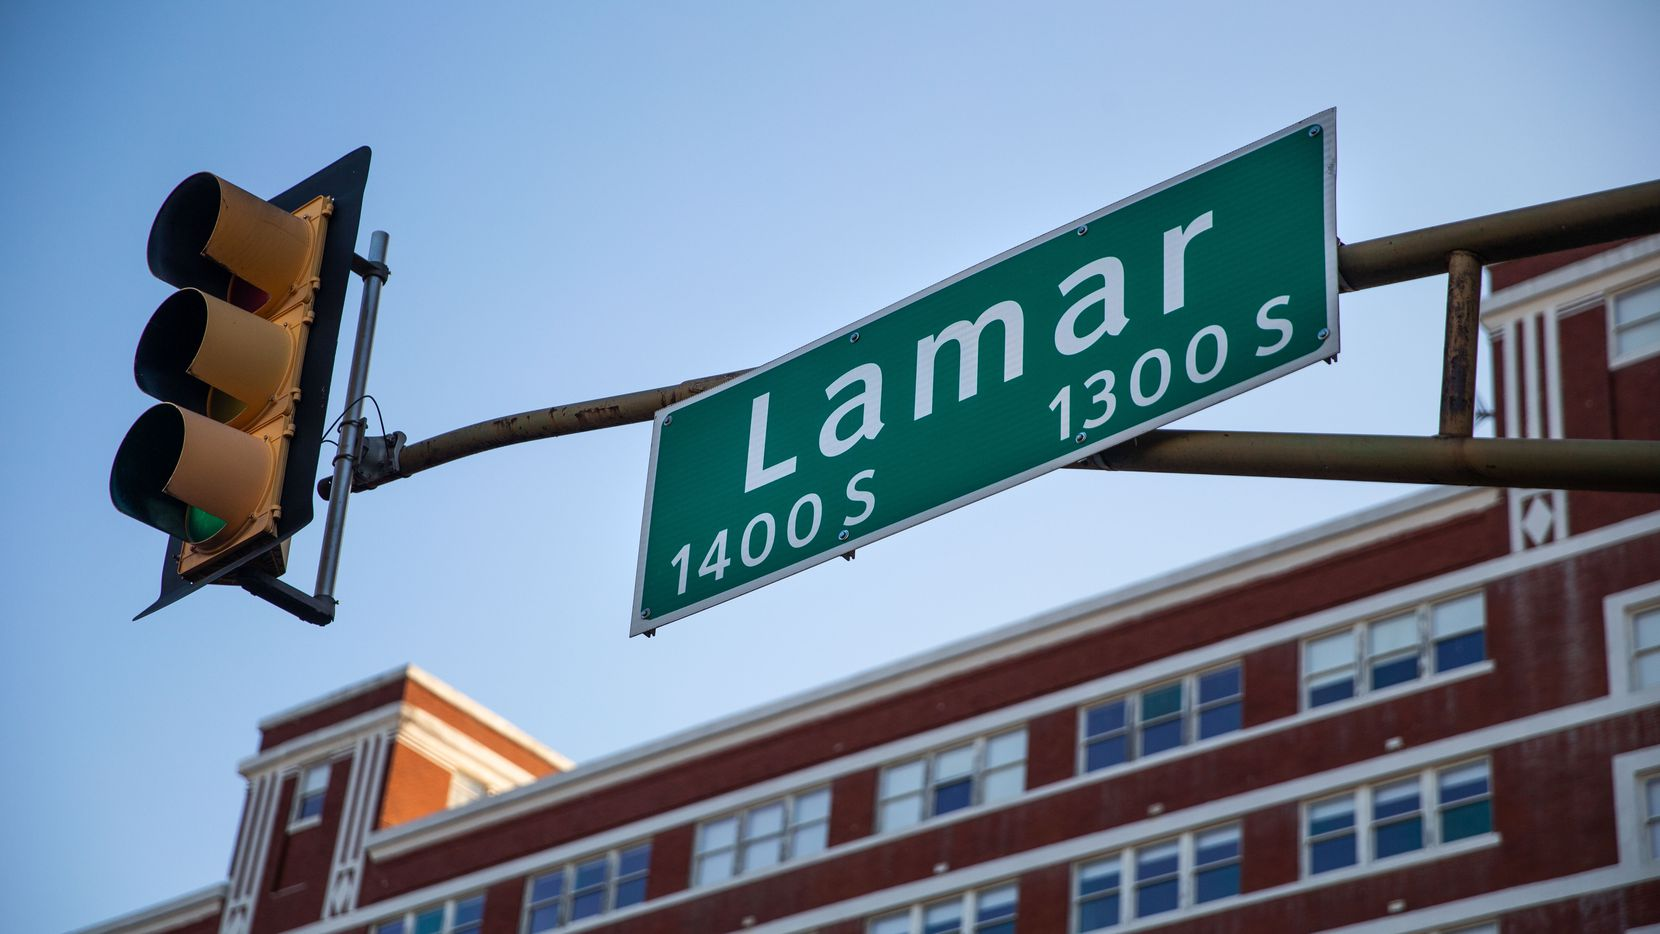 Lamar Street sign is photographed in Dallas on Friday, Jan. 8, 2021. The Dallas City Council is considering renaming a portion of South Lamar Street to Botham Jean Boulevard.  Jean was killed in his Lamar Street apartment in 2018 by then-Dallas police officer Amber Guyger. The proposal calls for renaming South Lamar Street between I-30 and South Central Expressway. (Lynda M. González/The Dallas Morning News)